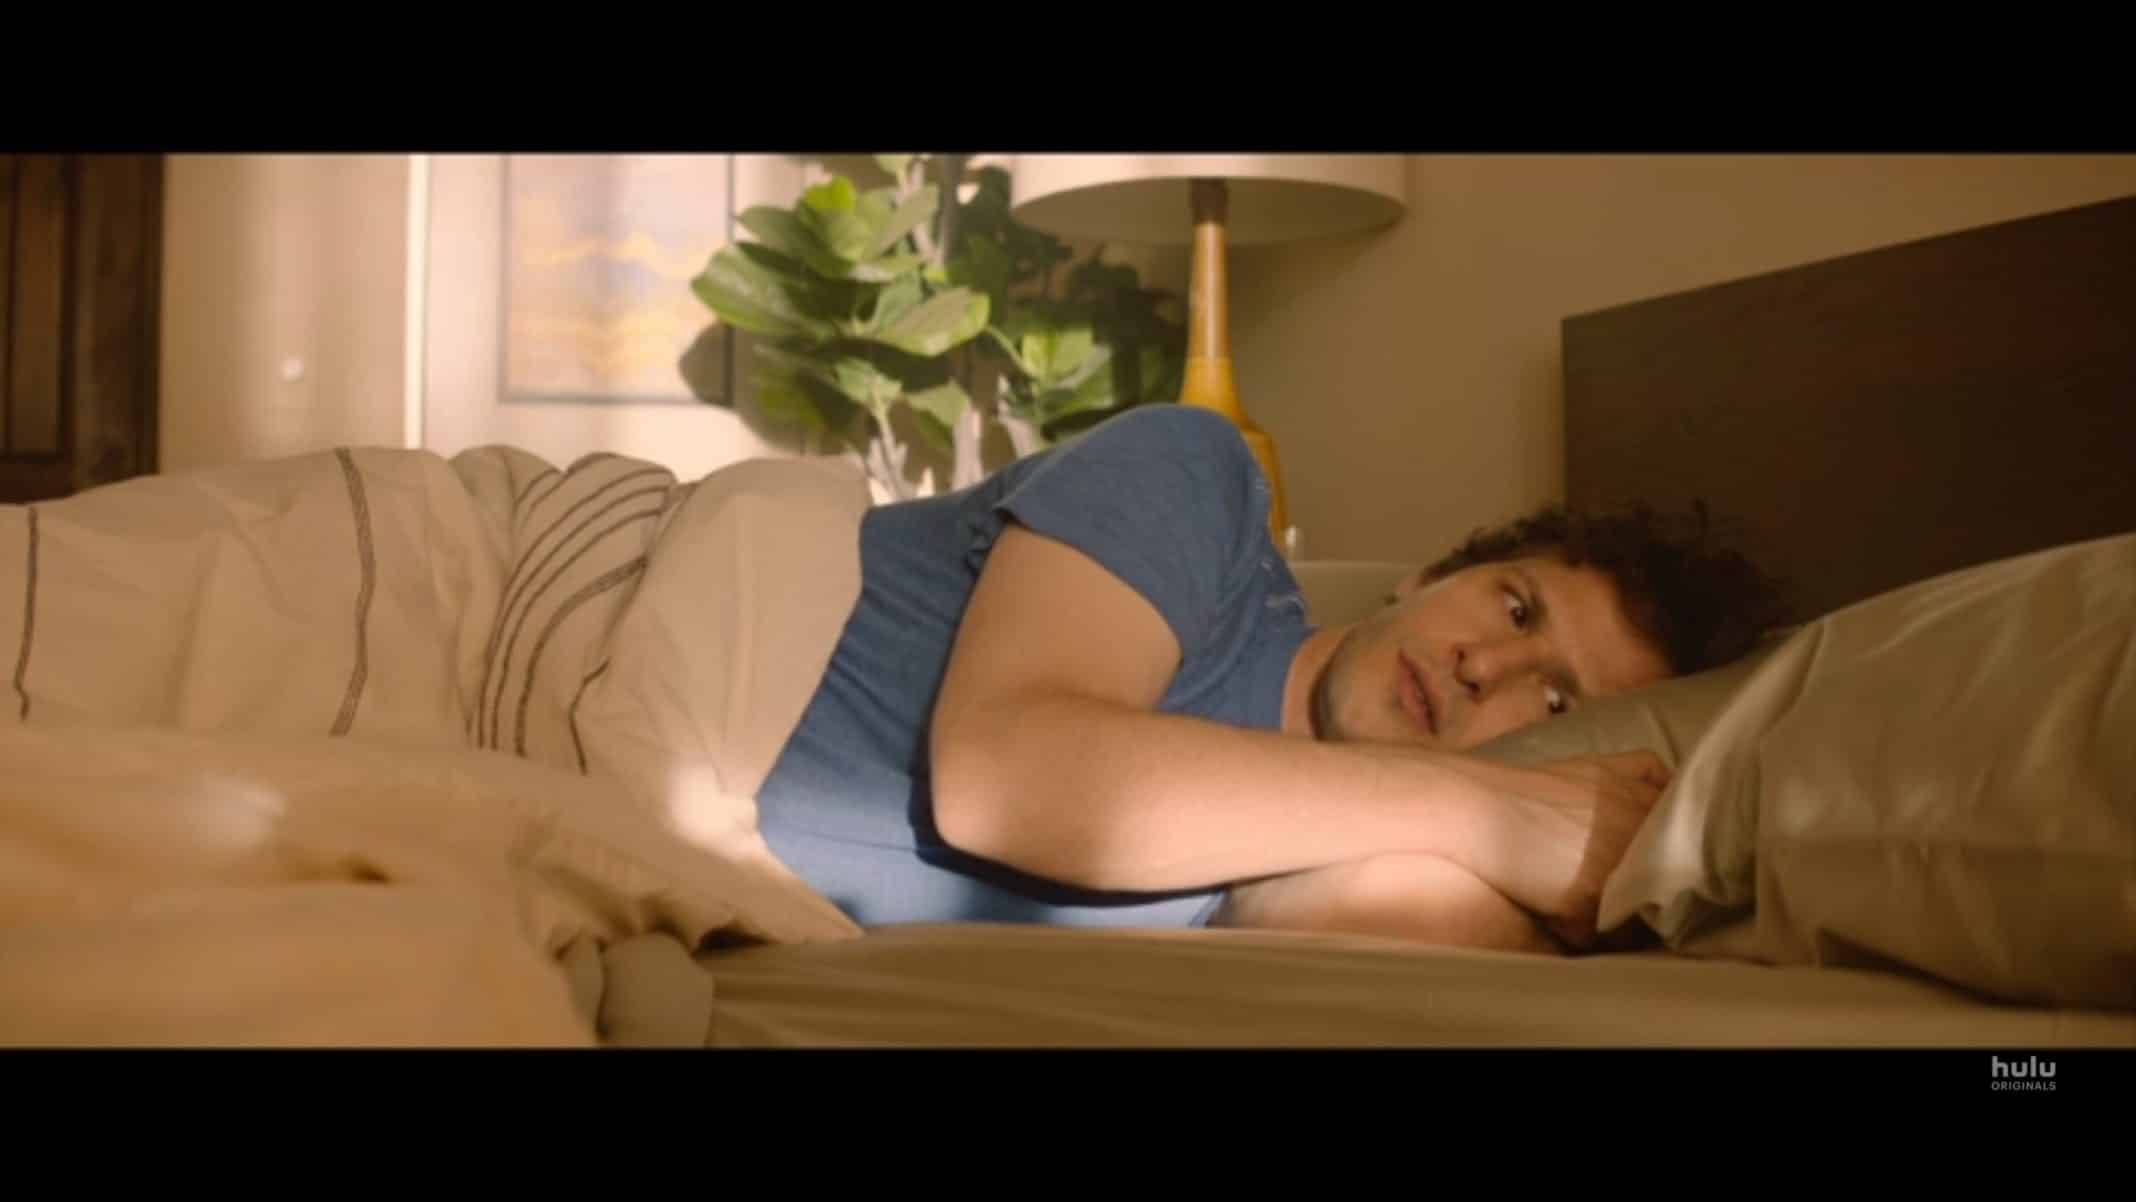 Nyles (Andy Samberg) waking up from a time loop.